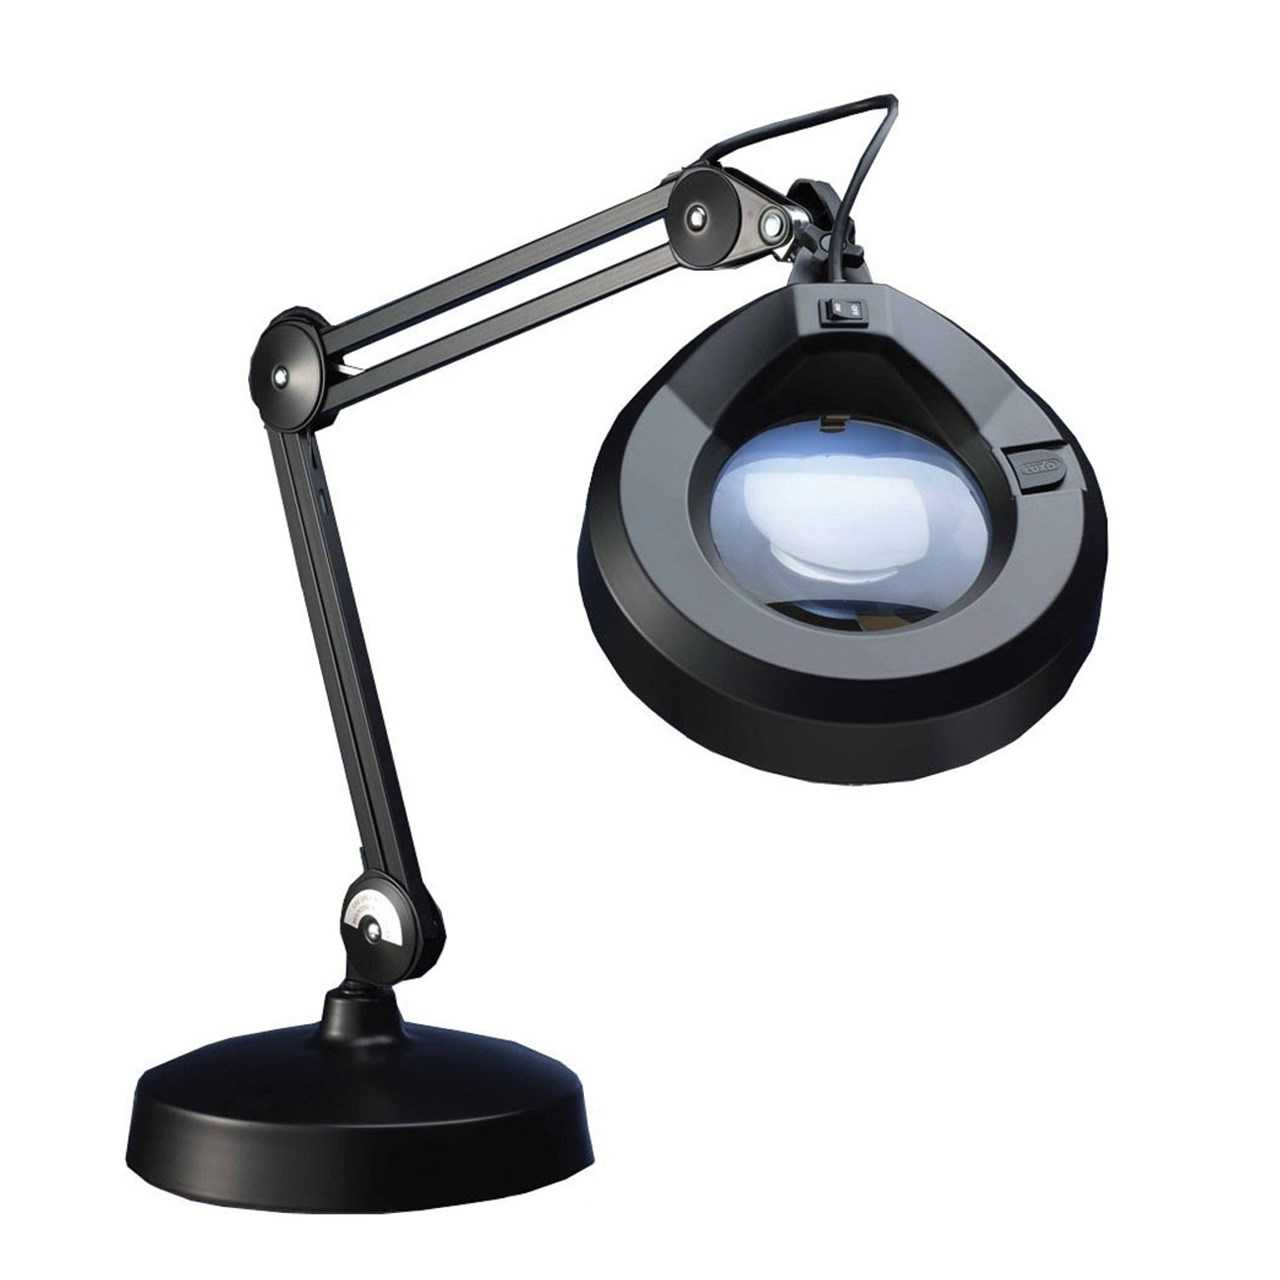 Maxiaids Magnifier Lamp 30in Arm 5d 2 25x Weighted Base Blk